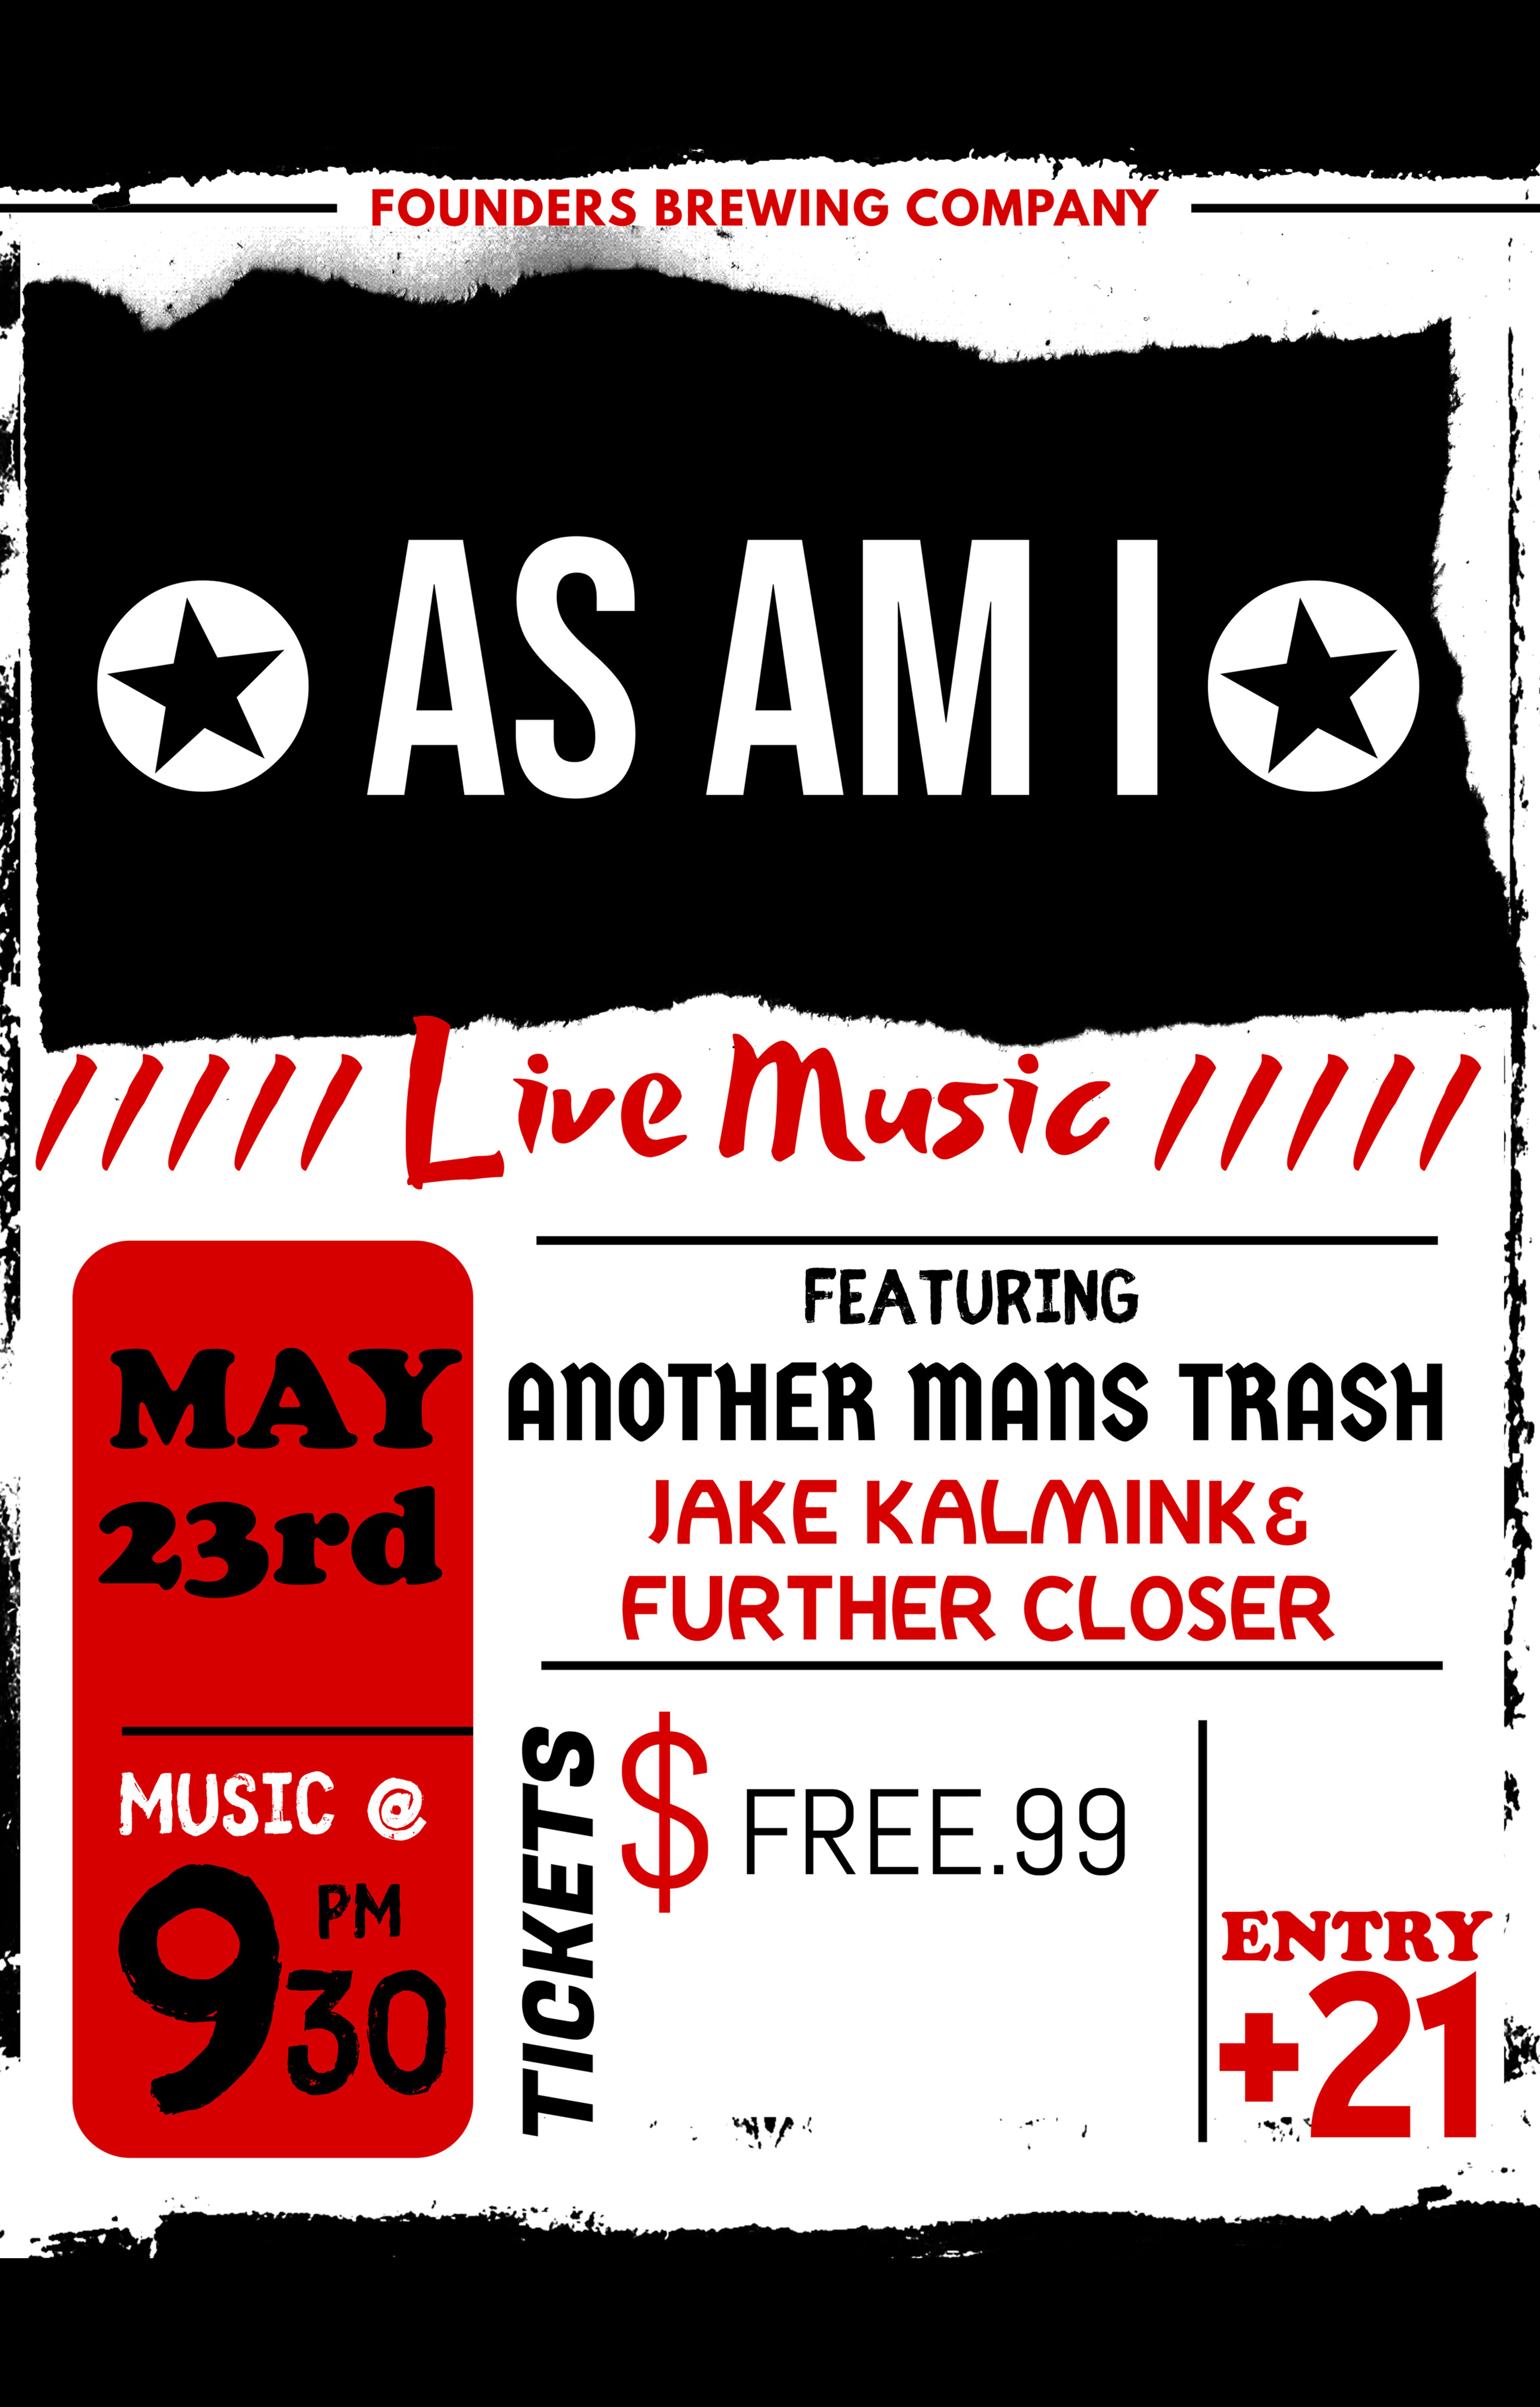 As Am I event poster